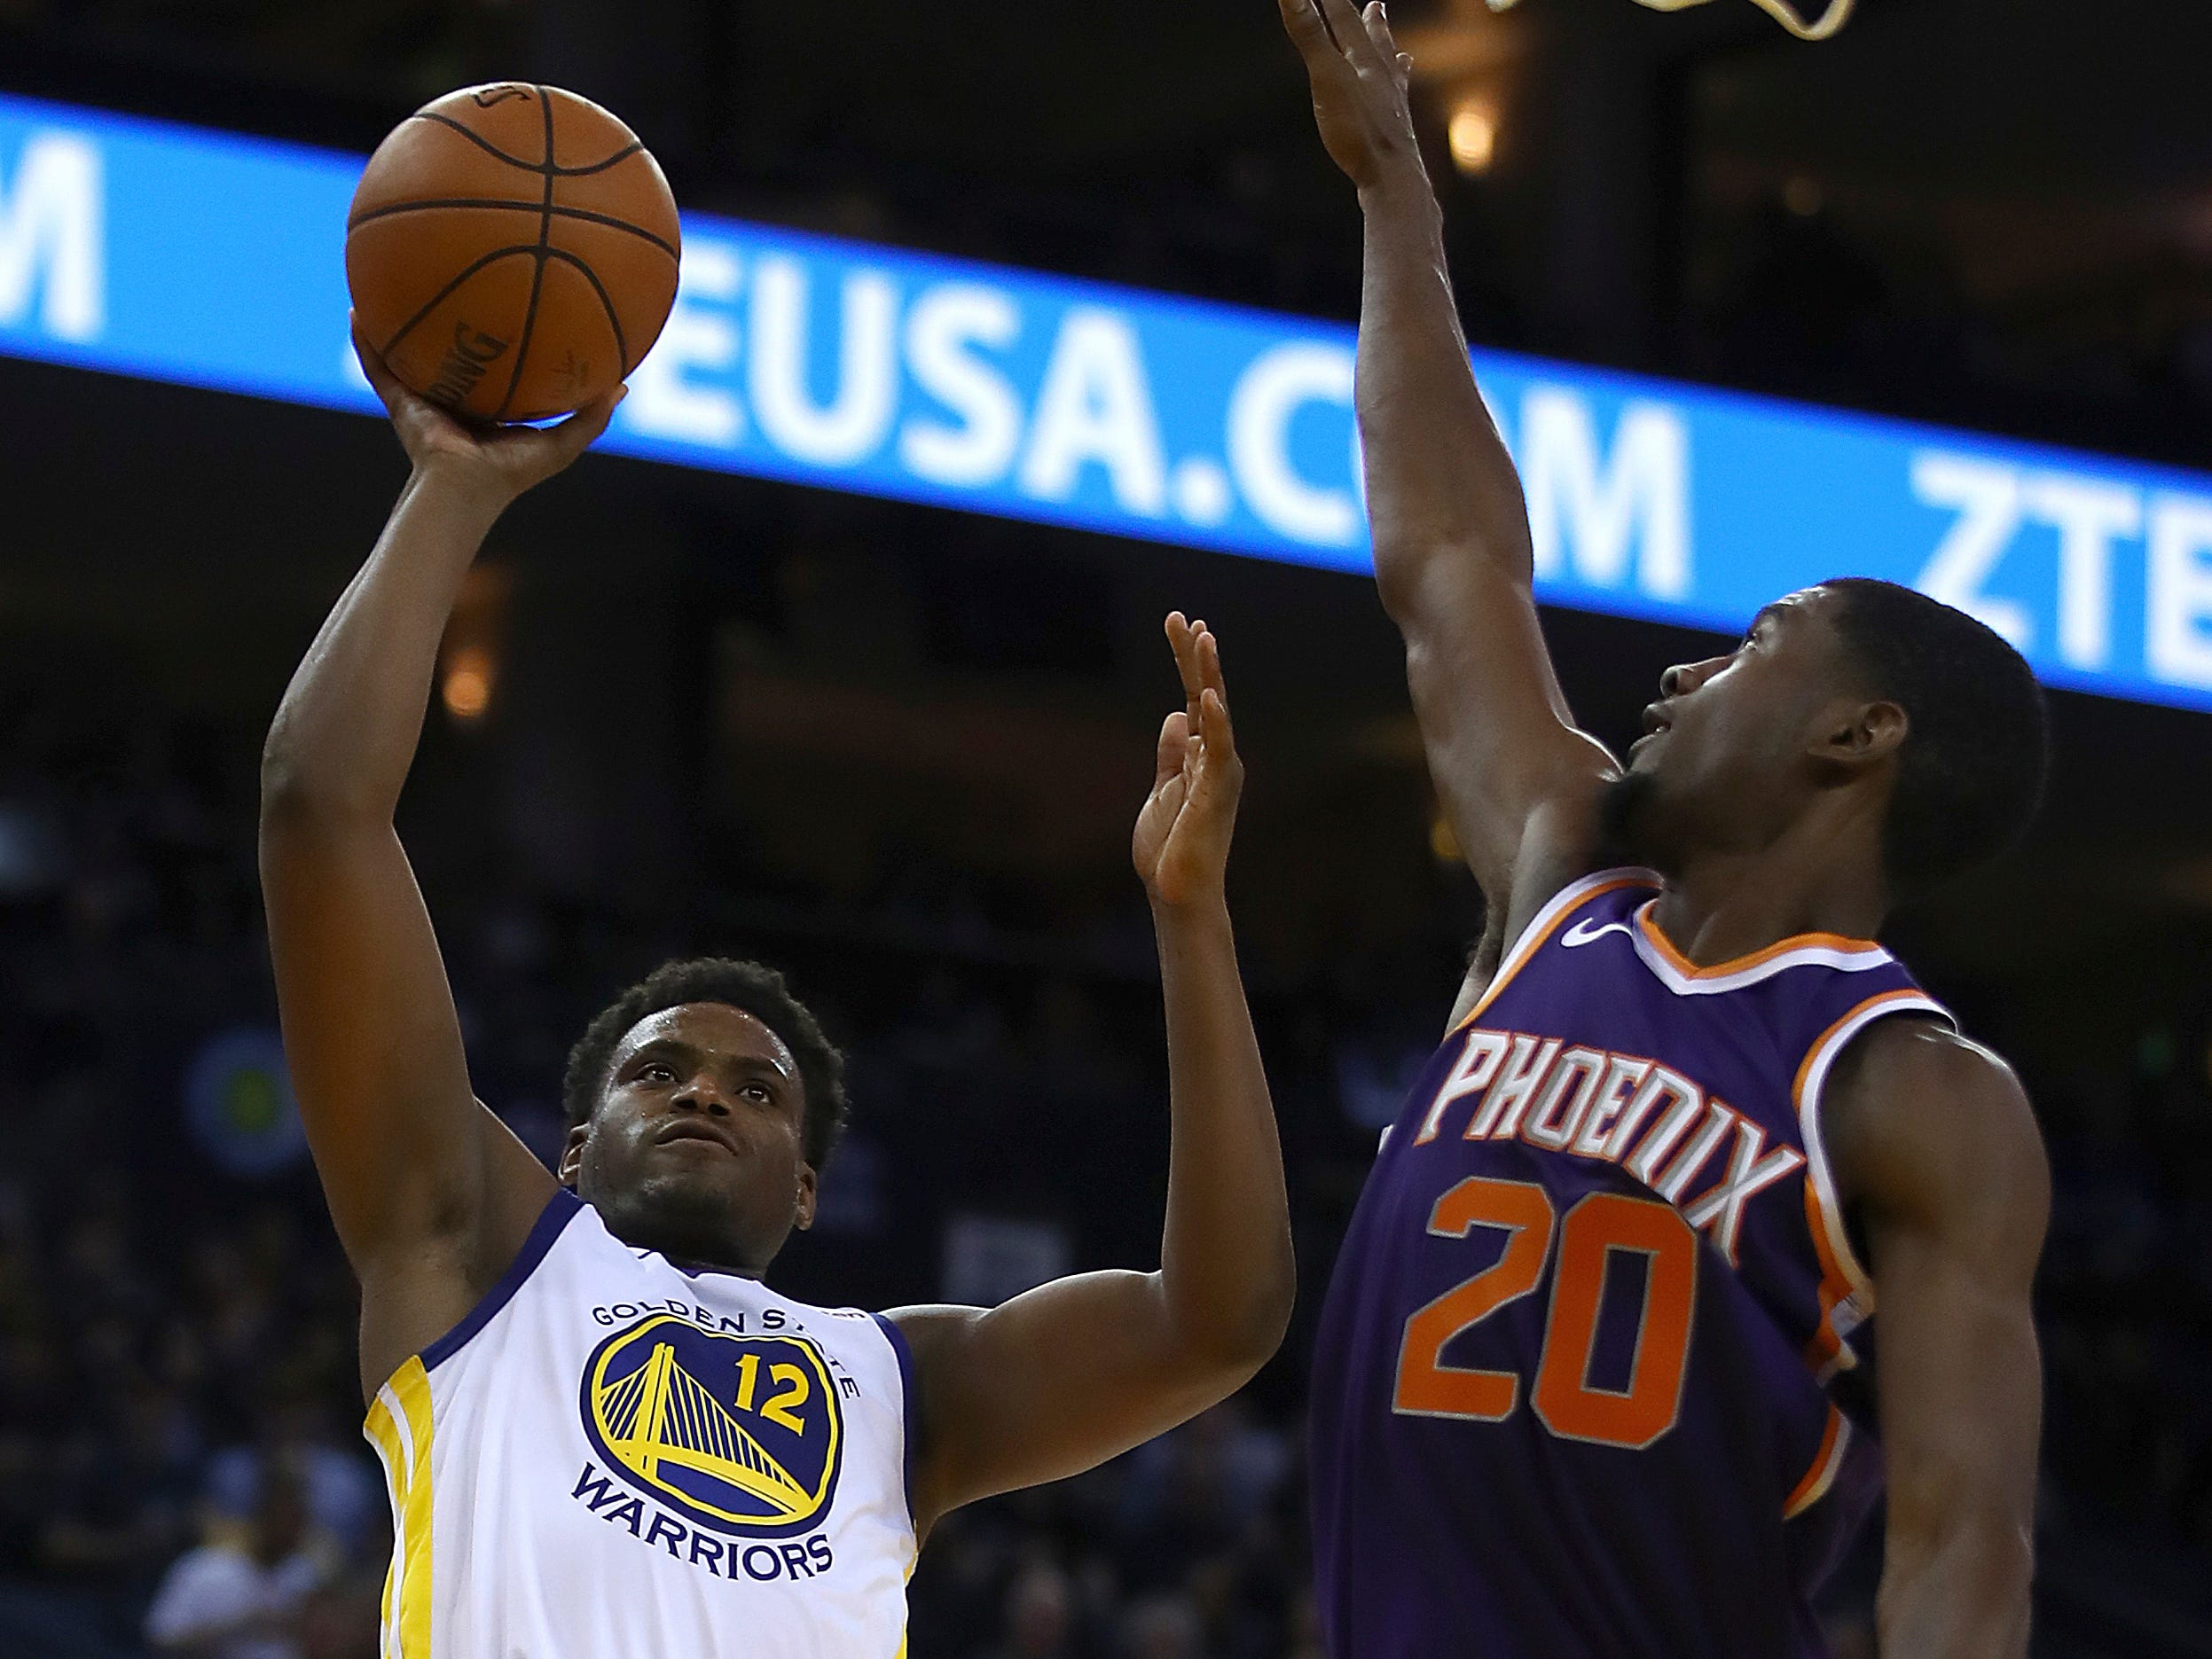 Golden State Warriors' Danuel House Jr., left, lays up a shot against Phoenix Suns' Josh Jackson (20) during the second half of a preseason NBA basketball game Monday, Oct. 8, 2018, in Oakland, Calif.